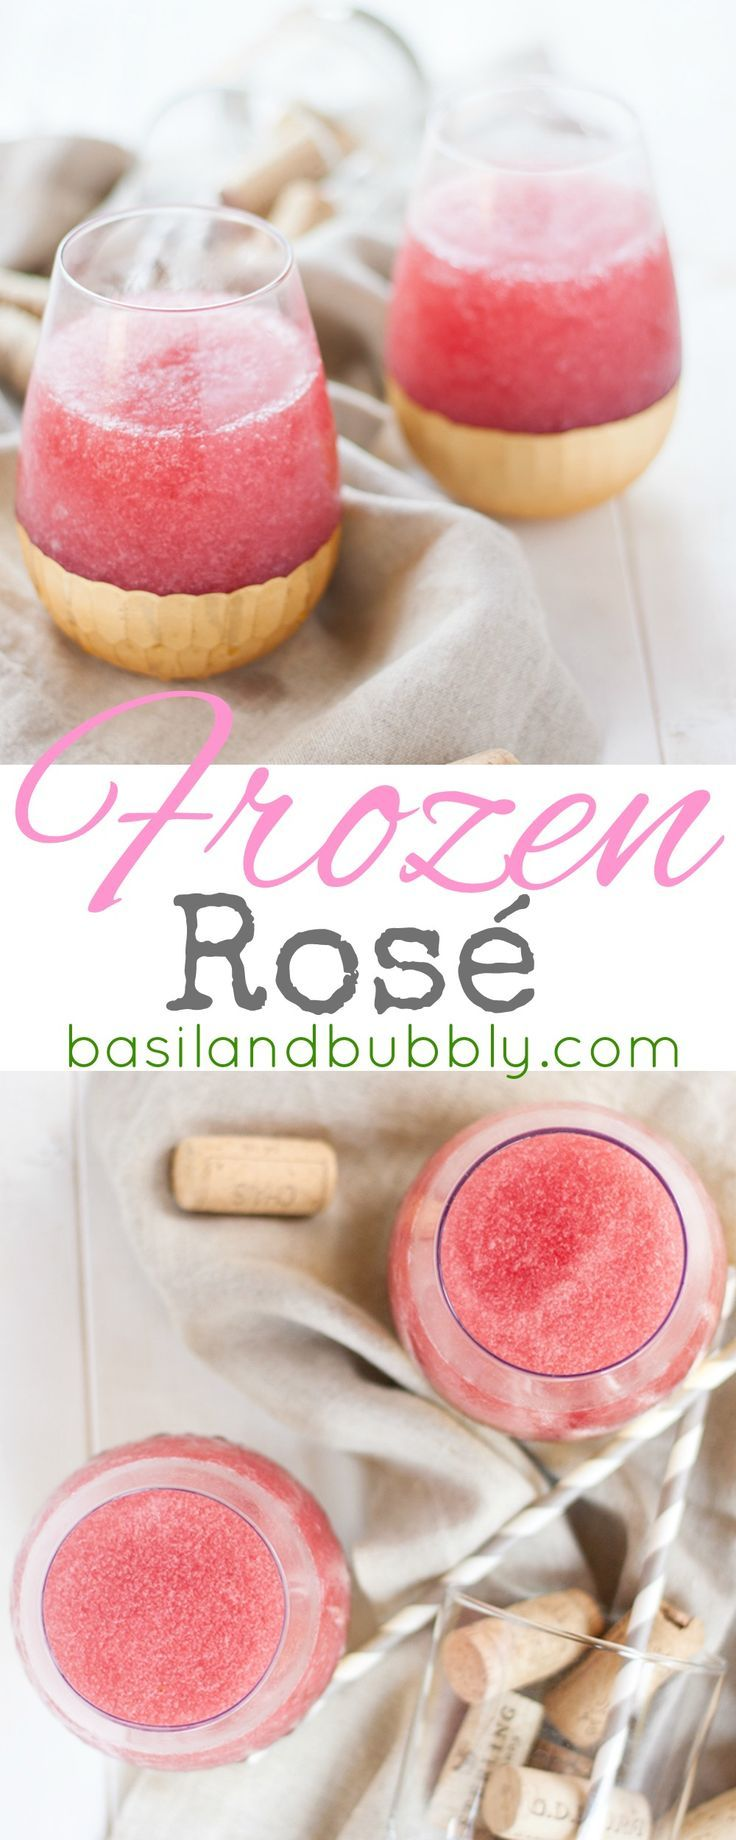 Frozen Ros -- I'm drinking this easy slushy frozen wine cocktail all summer long. Love it for porch drinking or a brunch cocktail